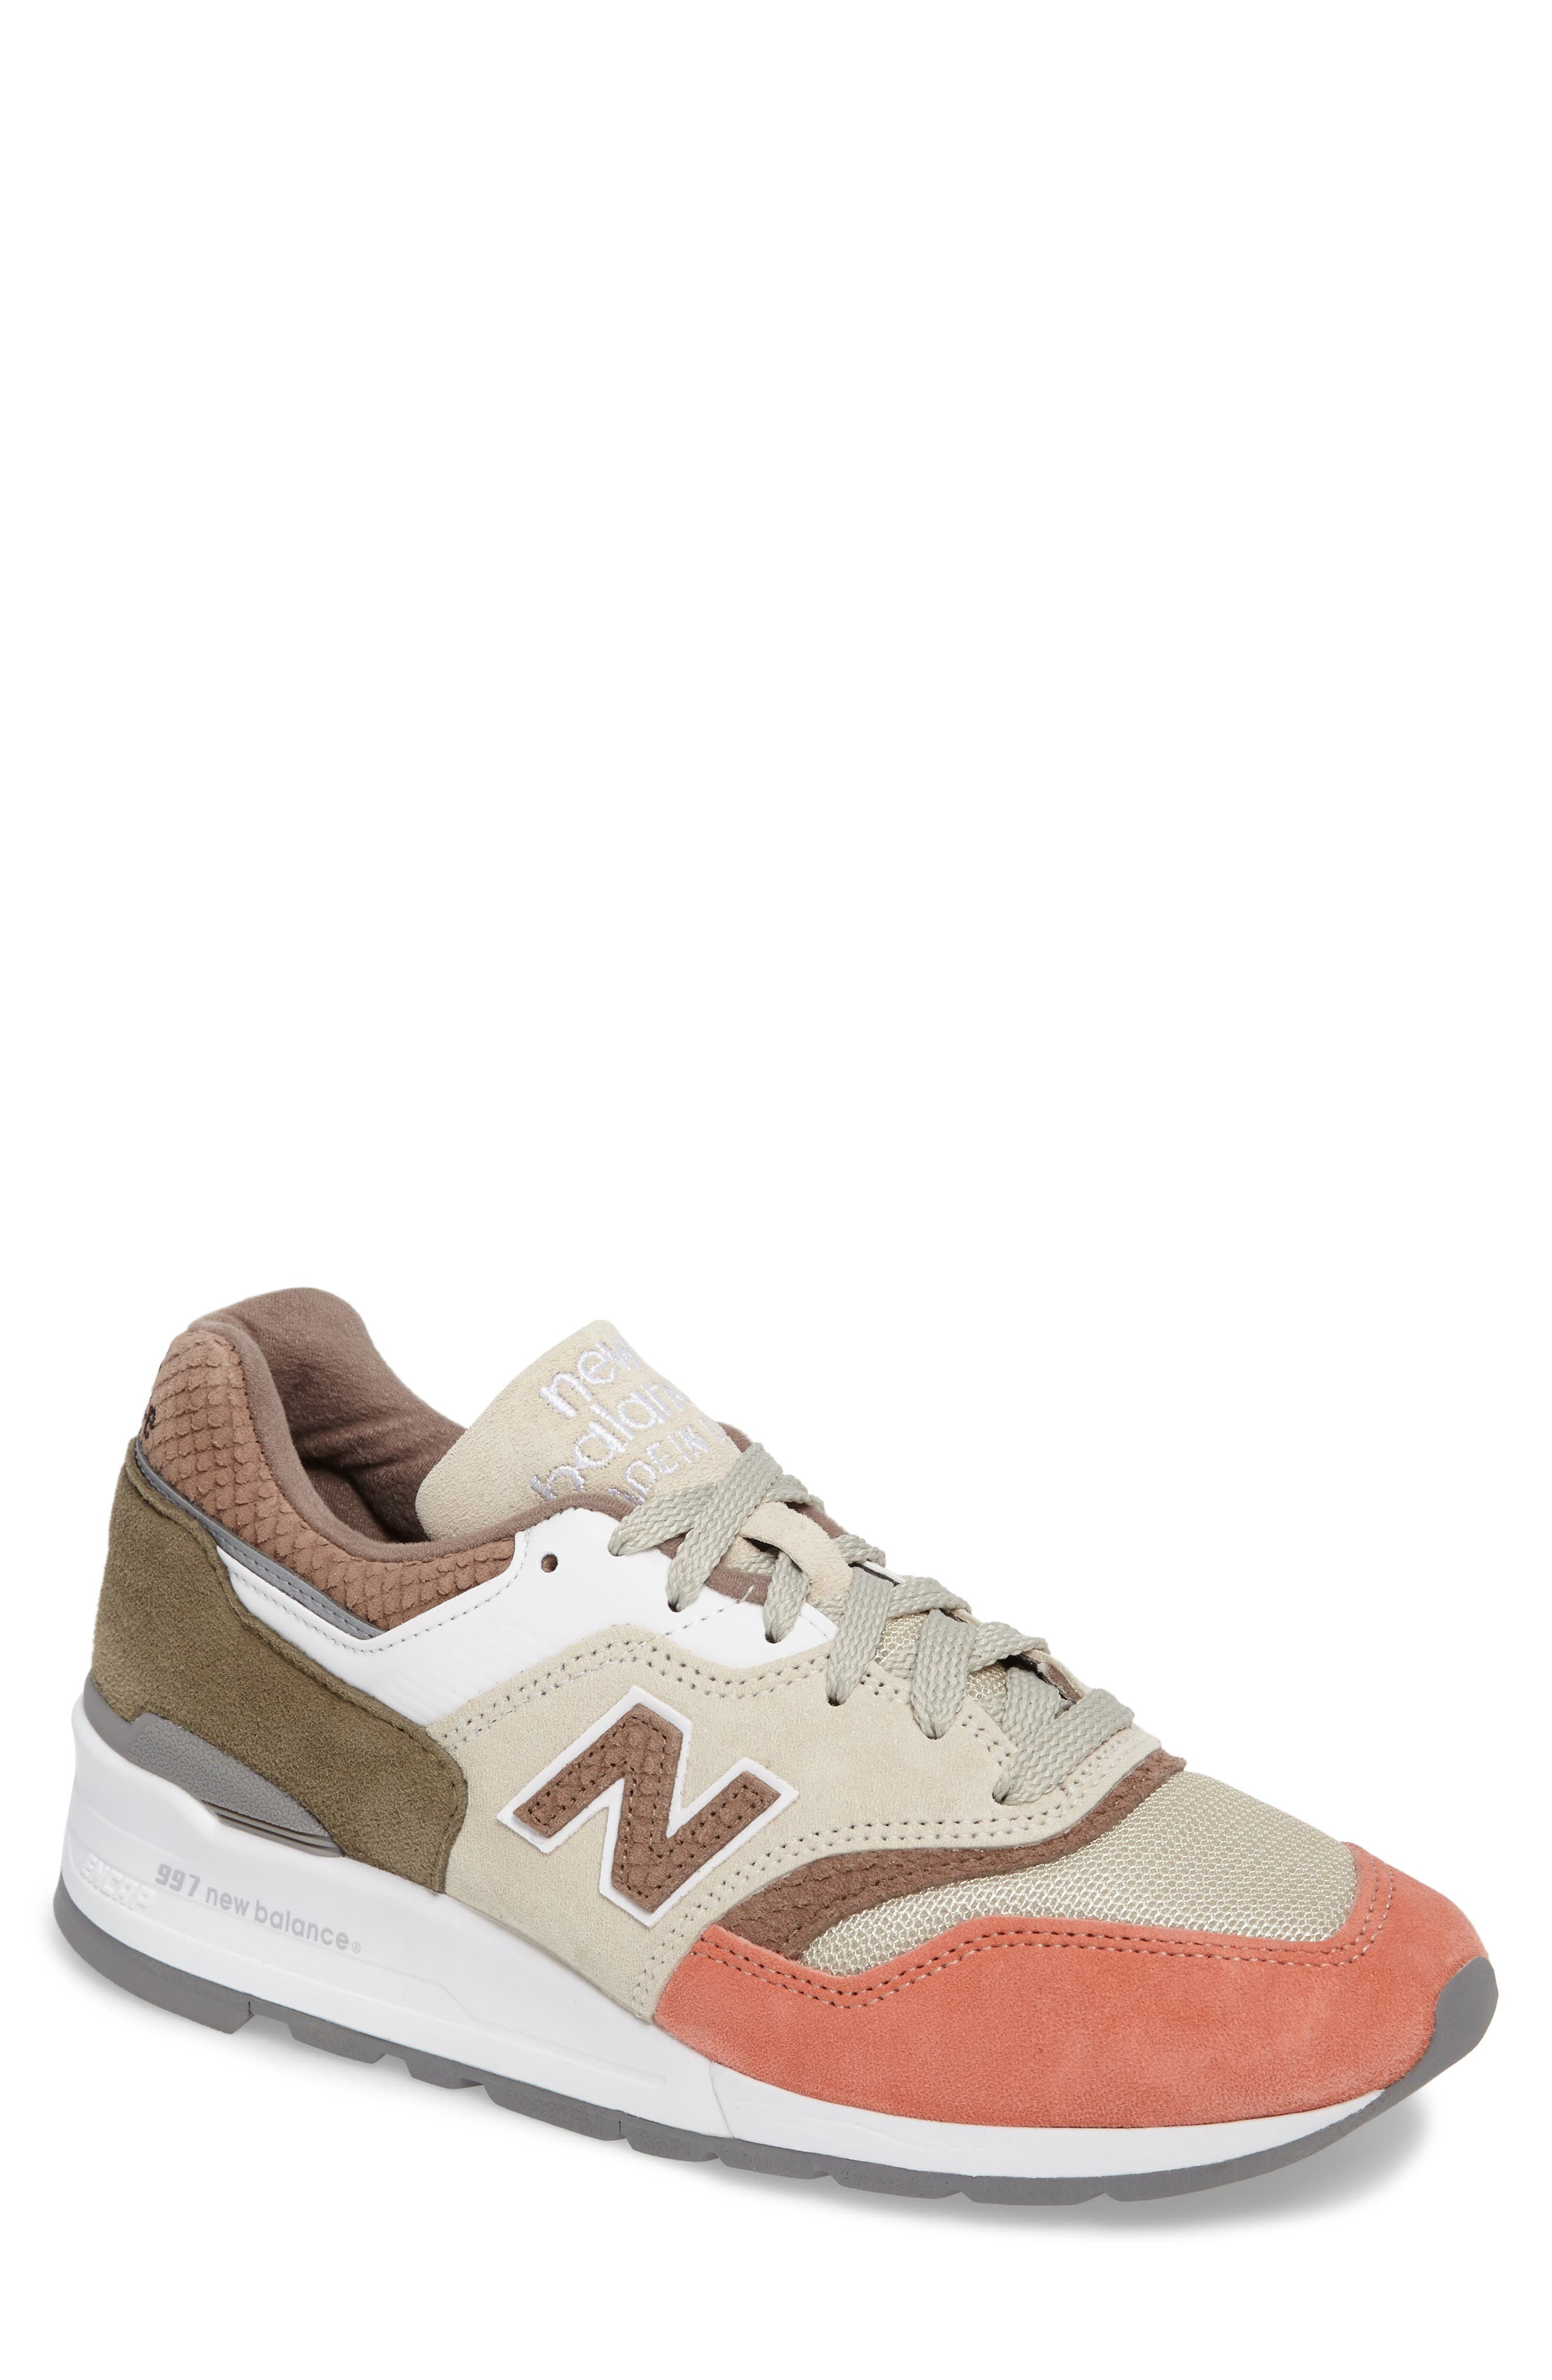 New Balance 997 Sneaker (Men)